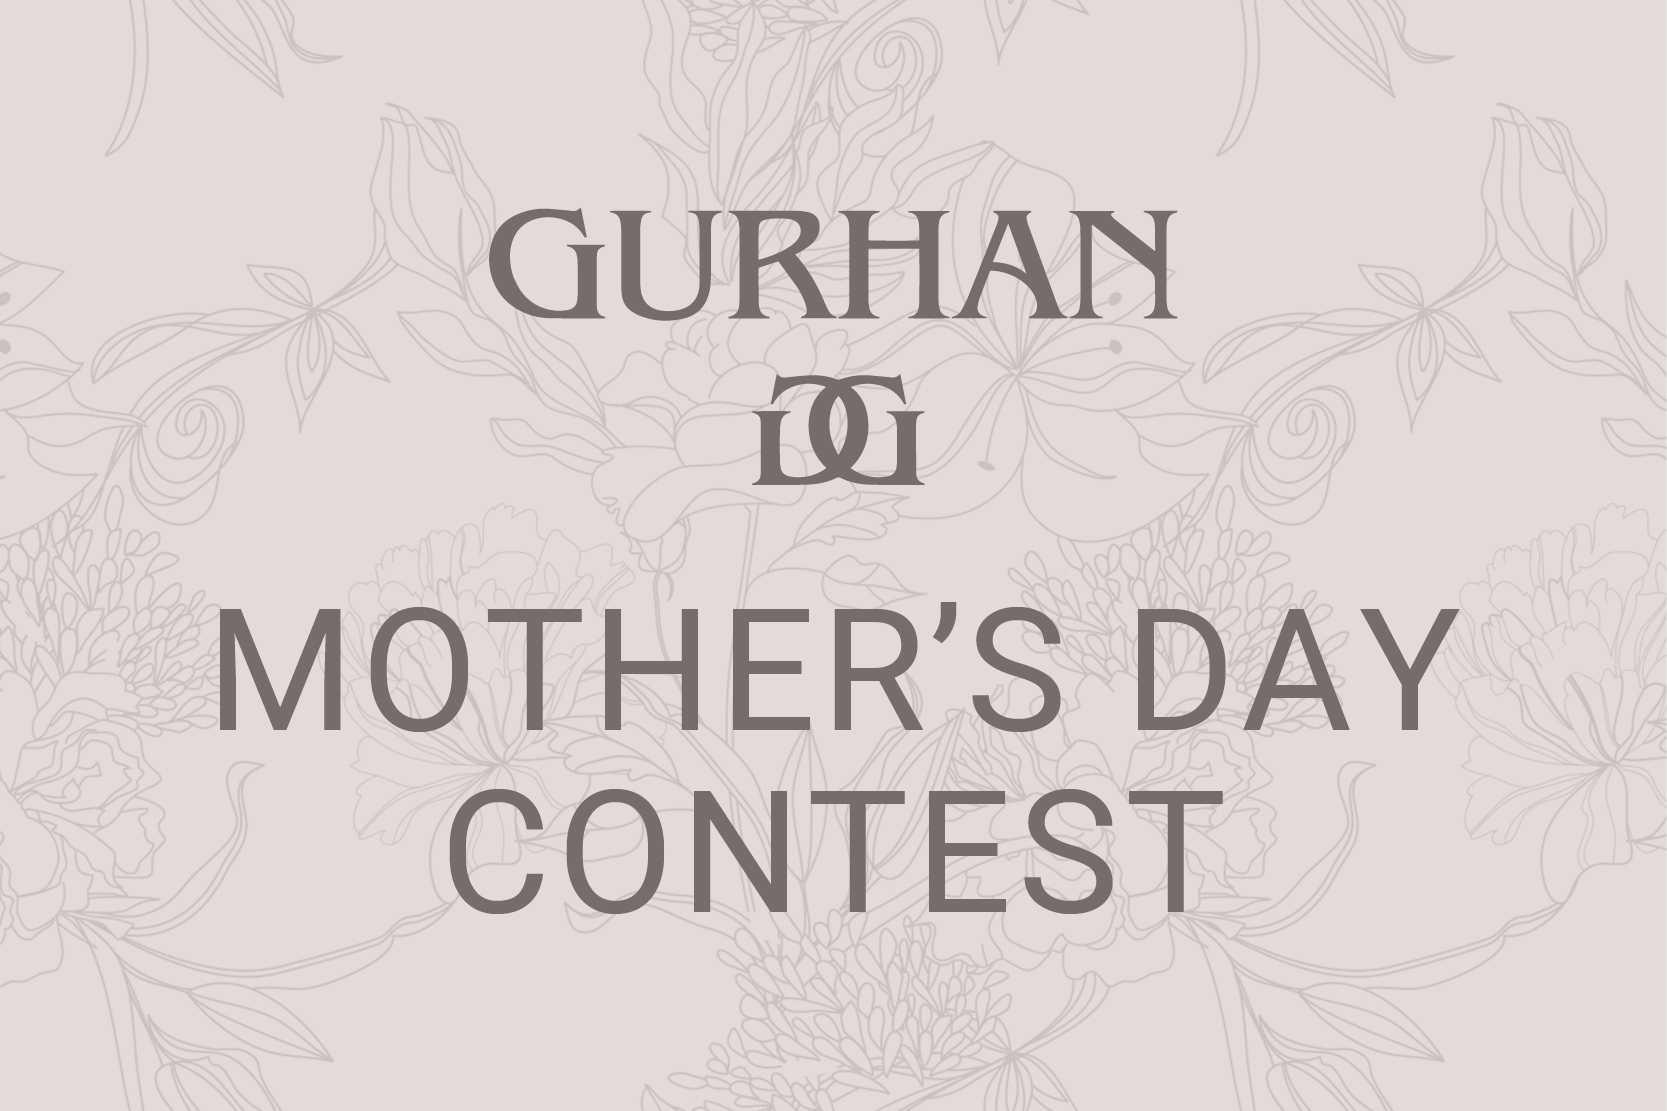 Gurhan Mother's Day Contest